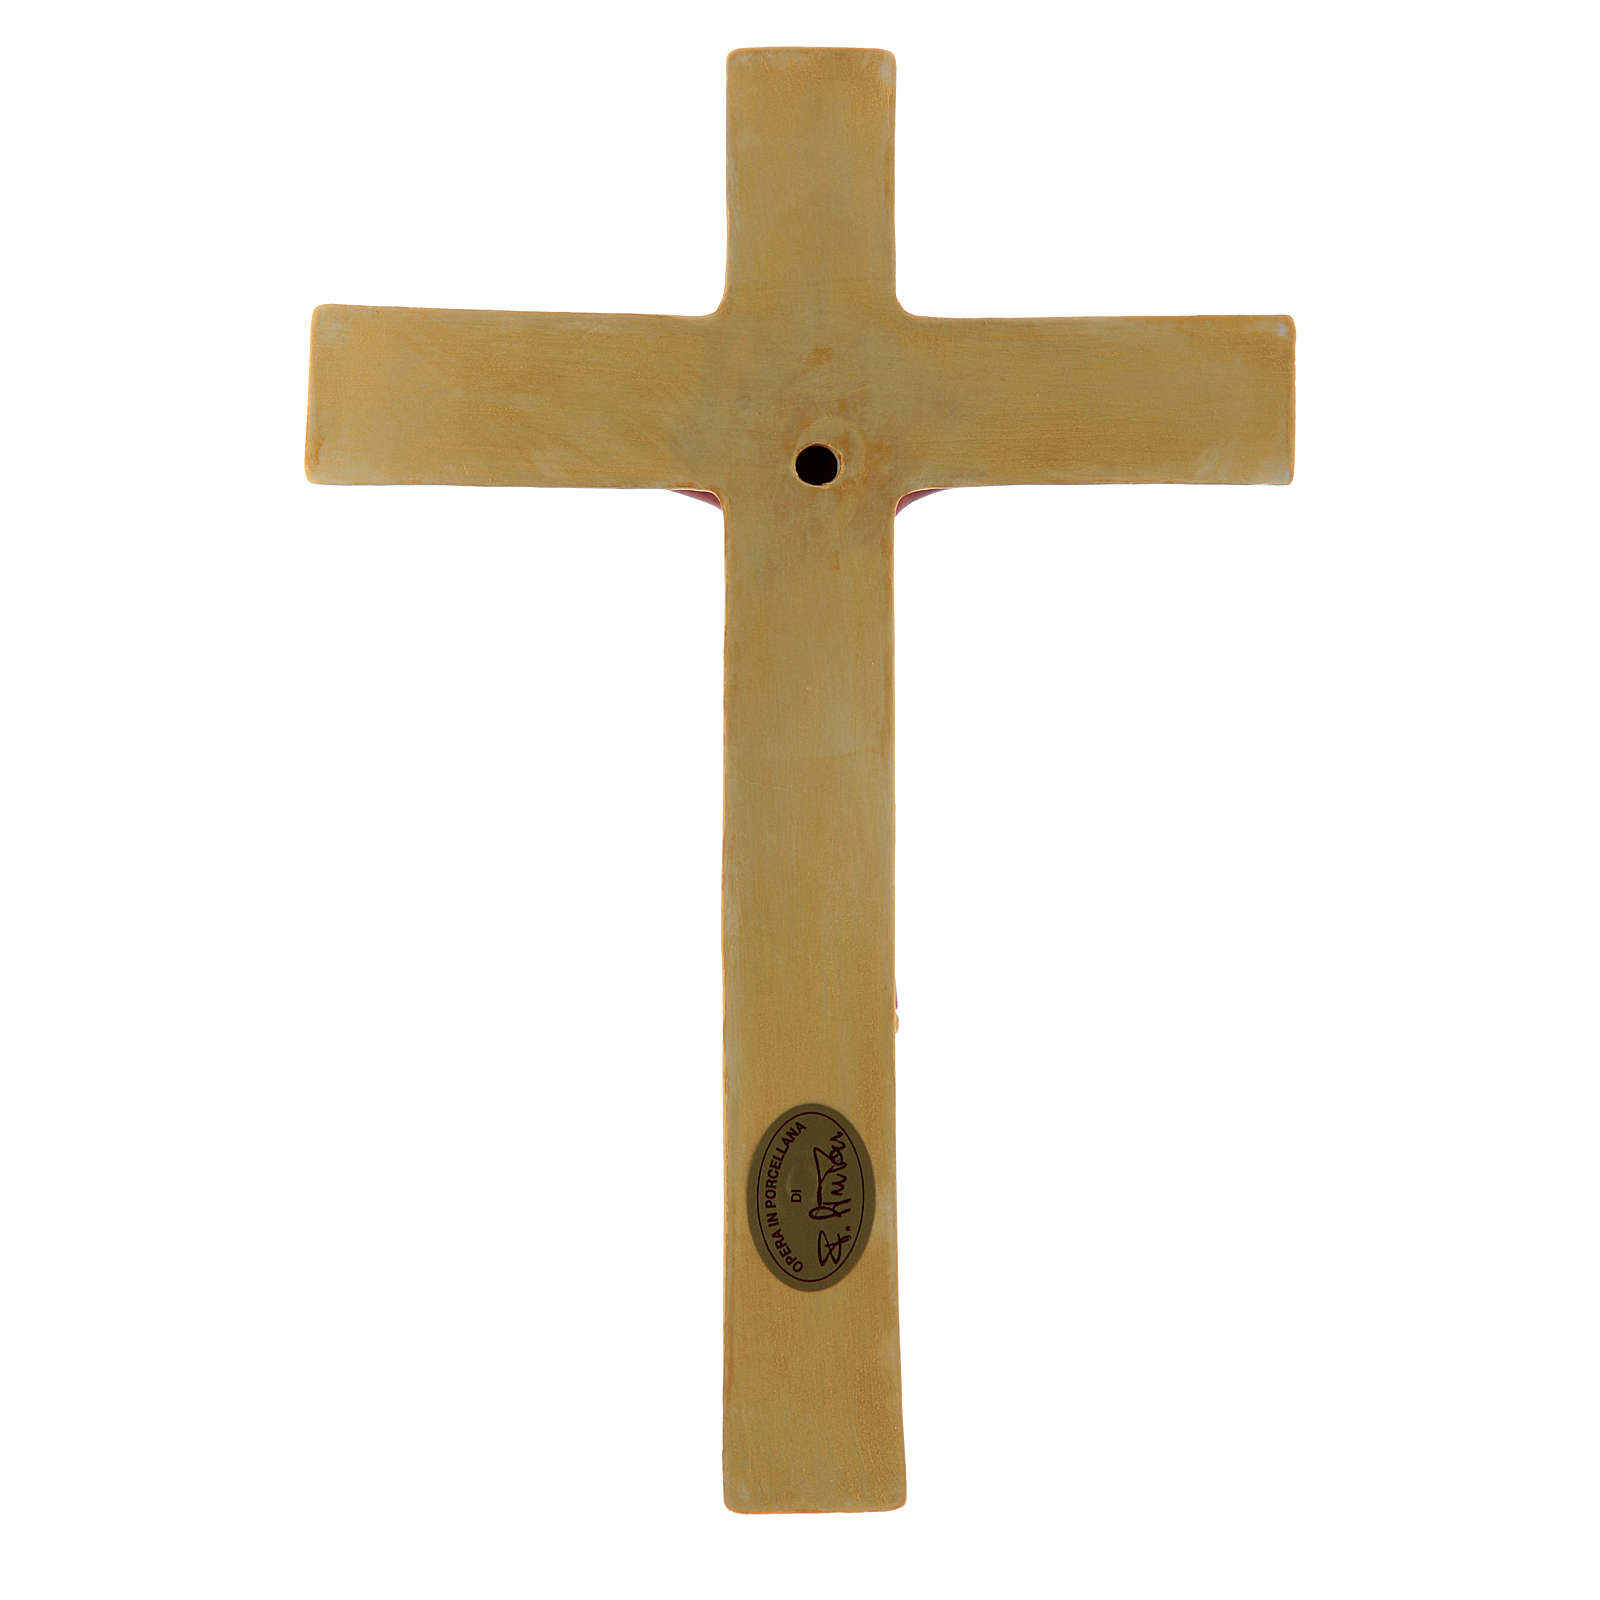 Pinton bas-relief crucifix with Jesus Christ dressed in red tunic and golden cross 25X17 cm 4